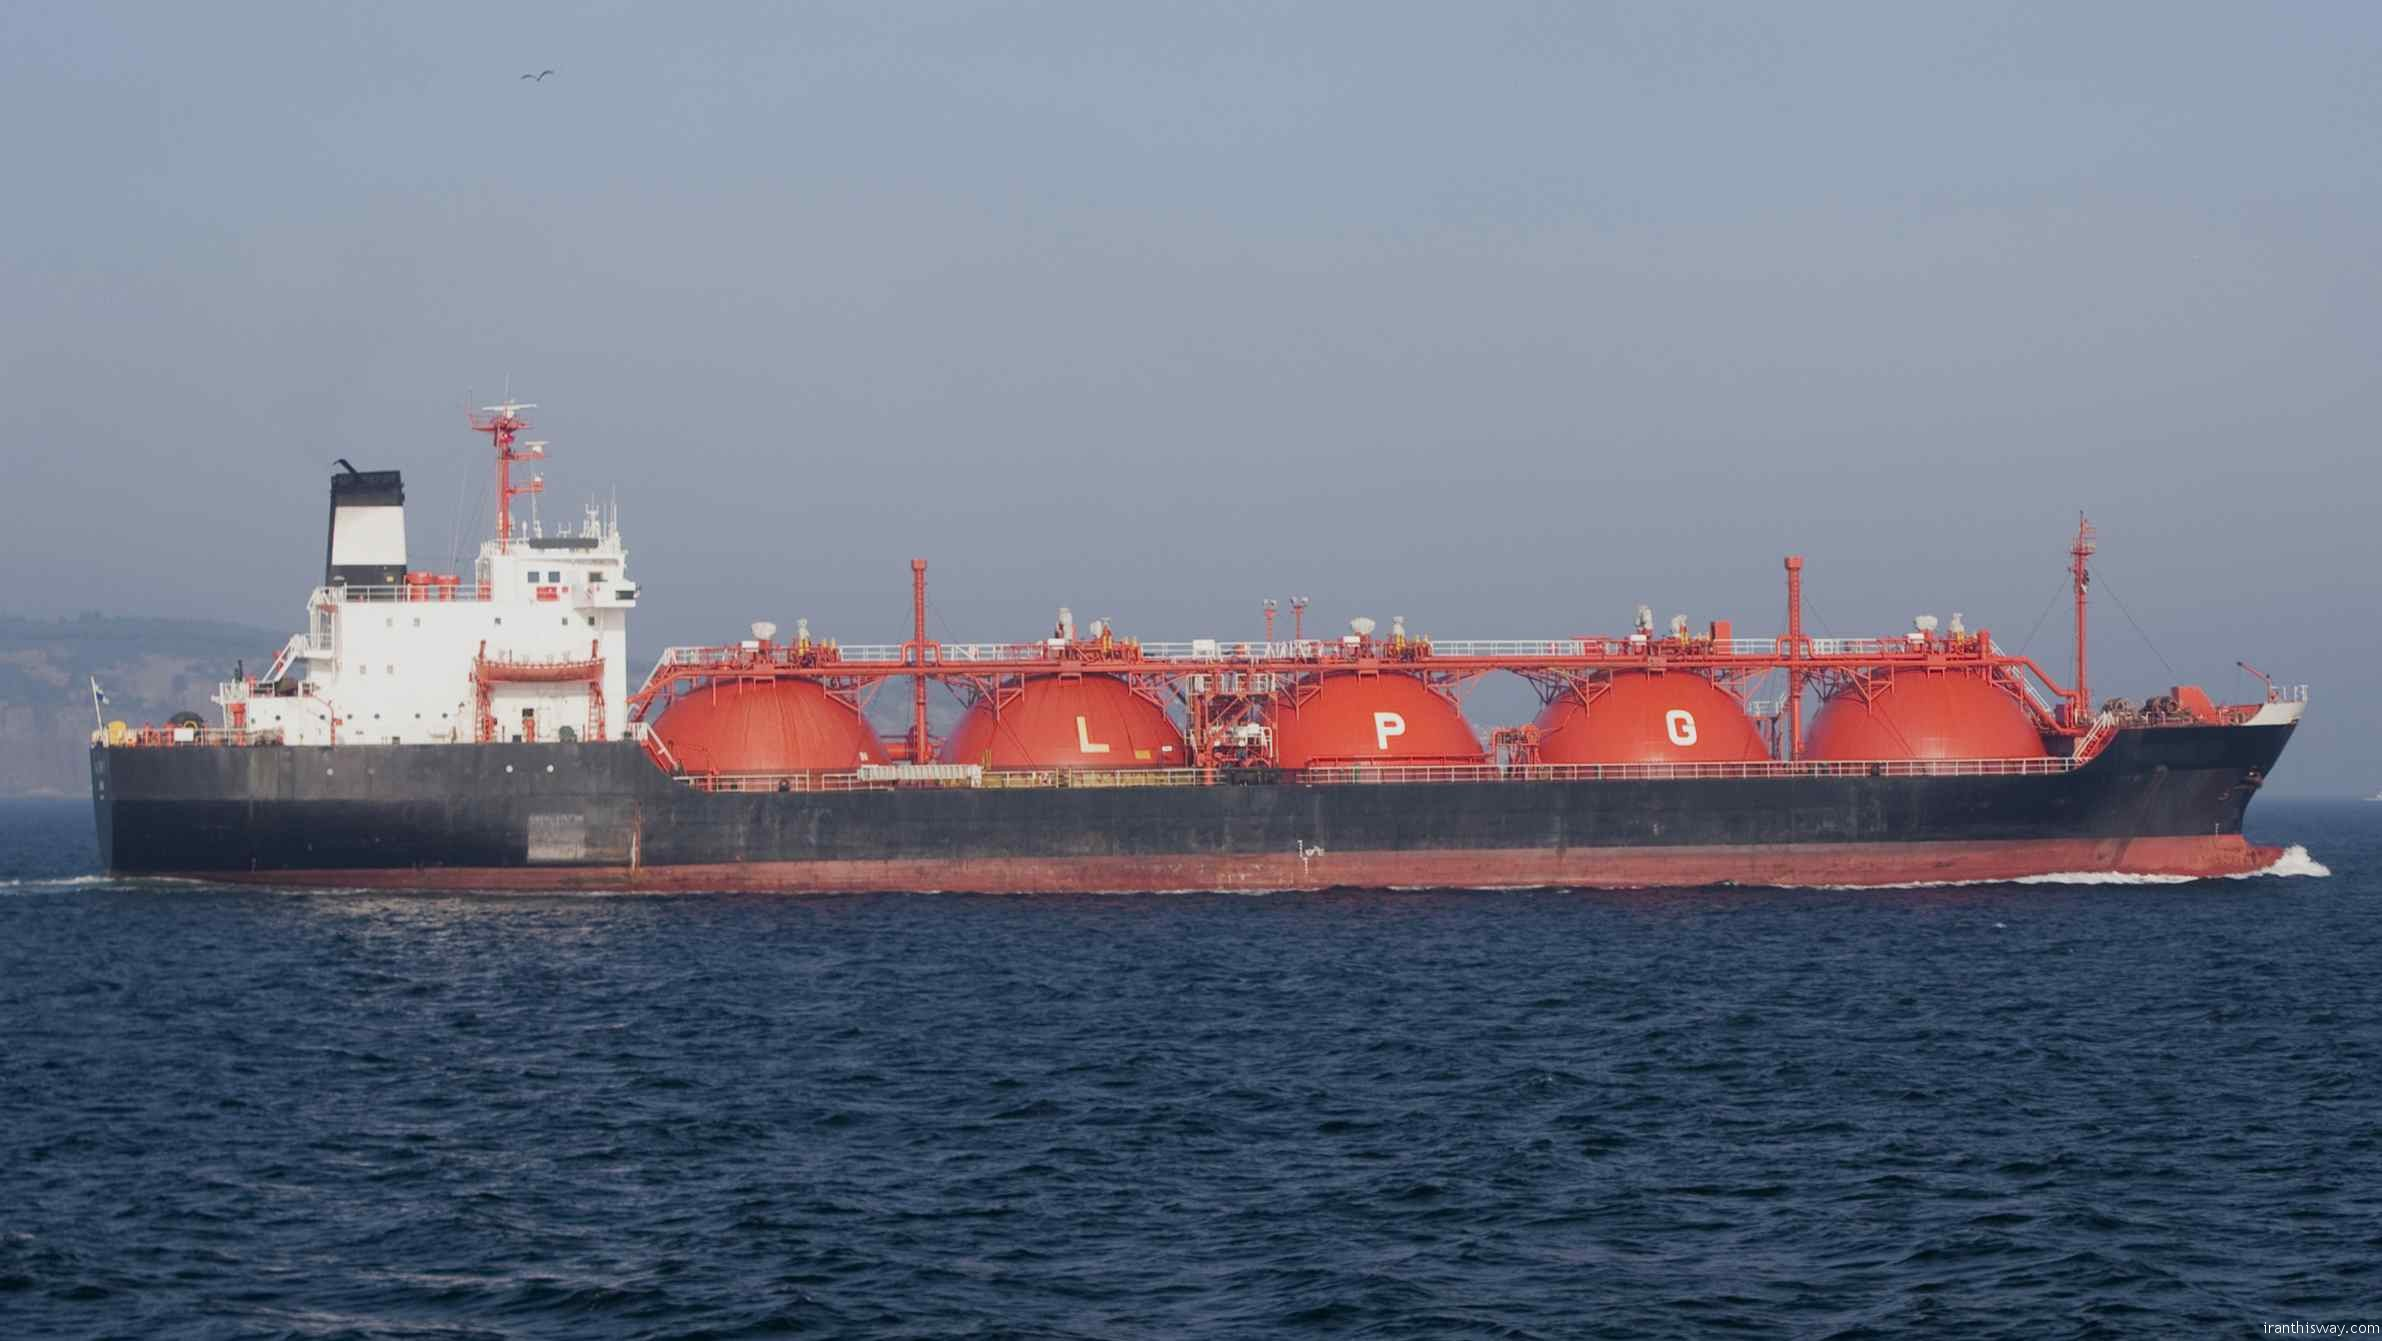 Indonesia Import LPG from Iran in 2017